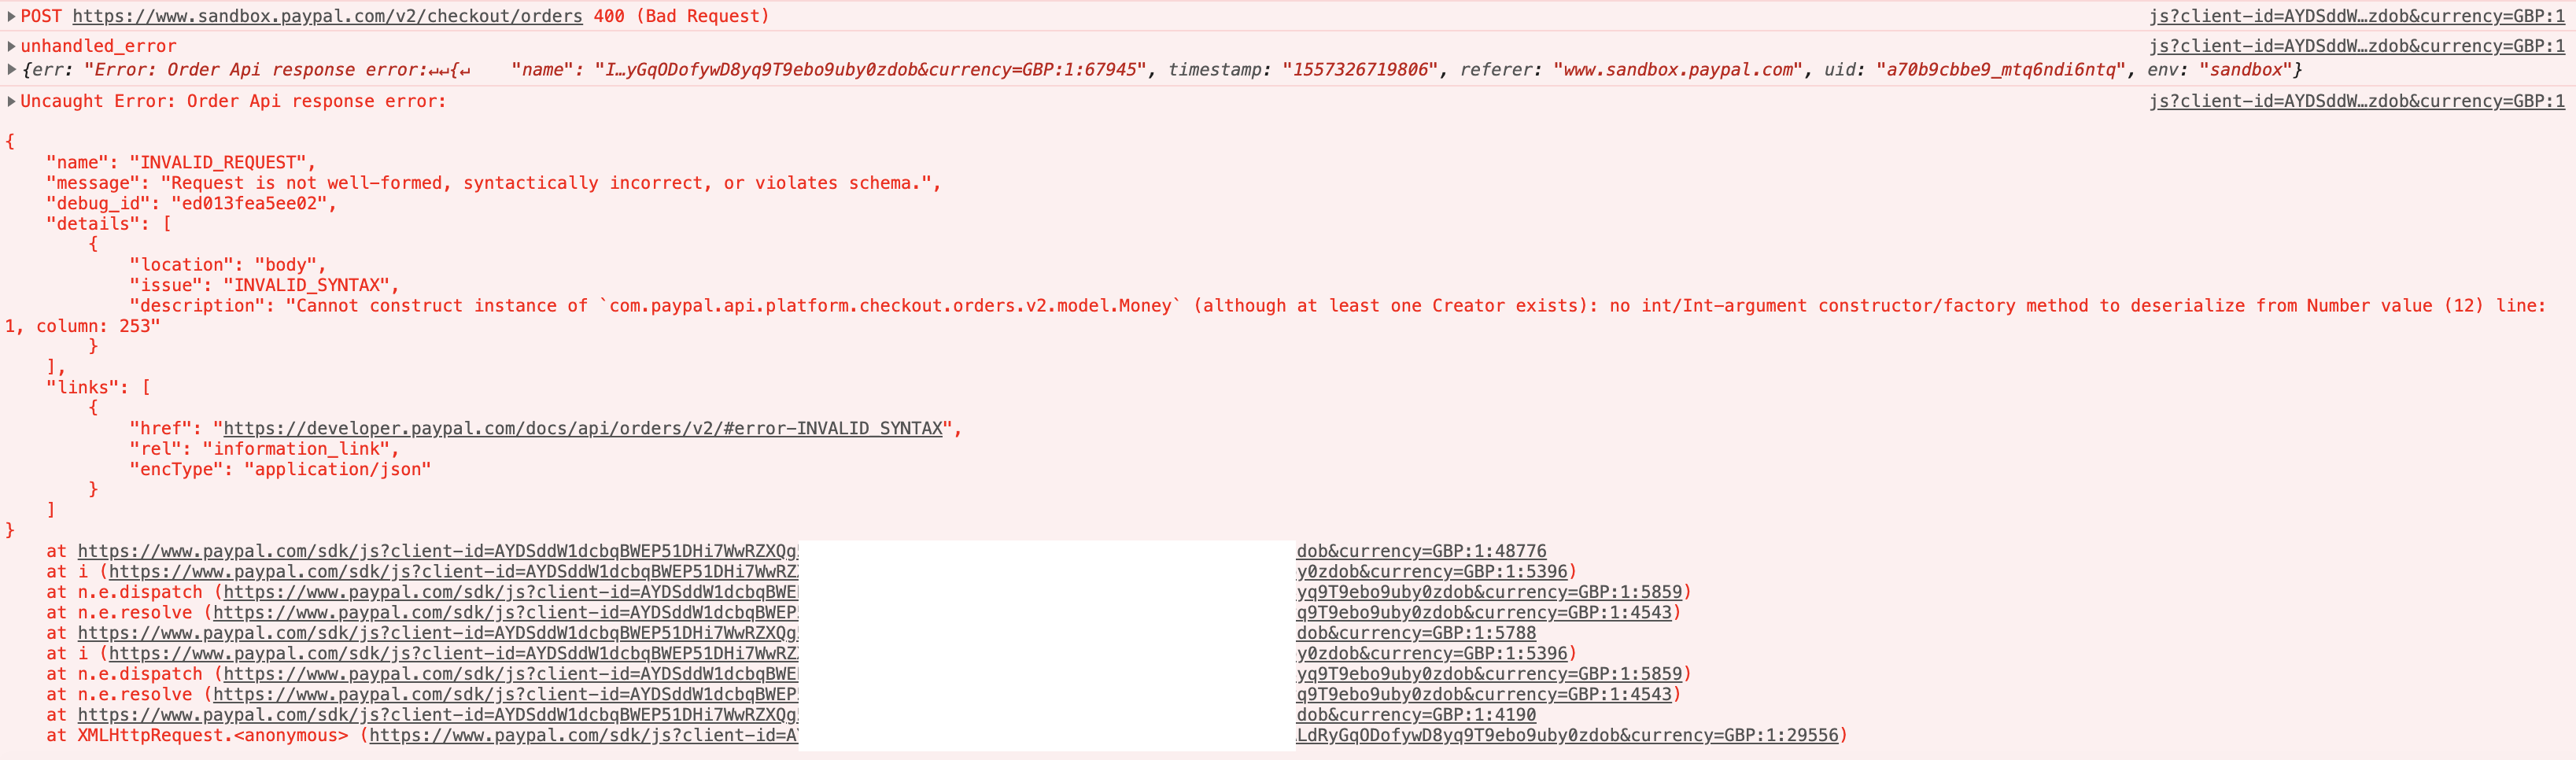 Order Api response error: INVALID_REQUEST - when passing items and